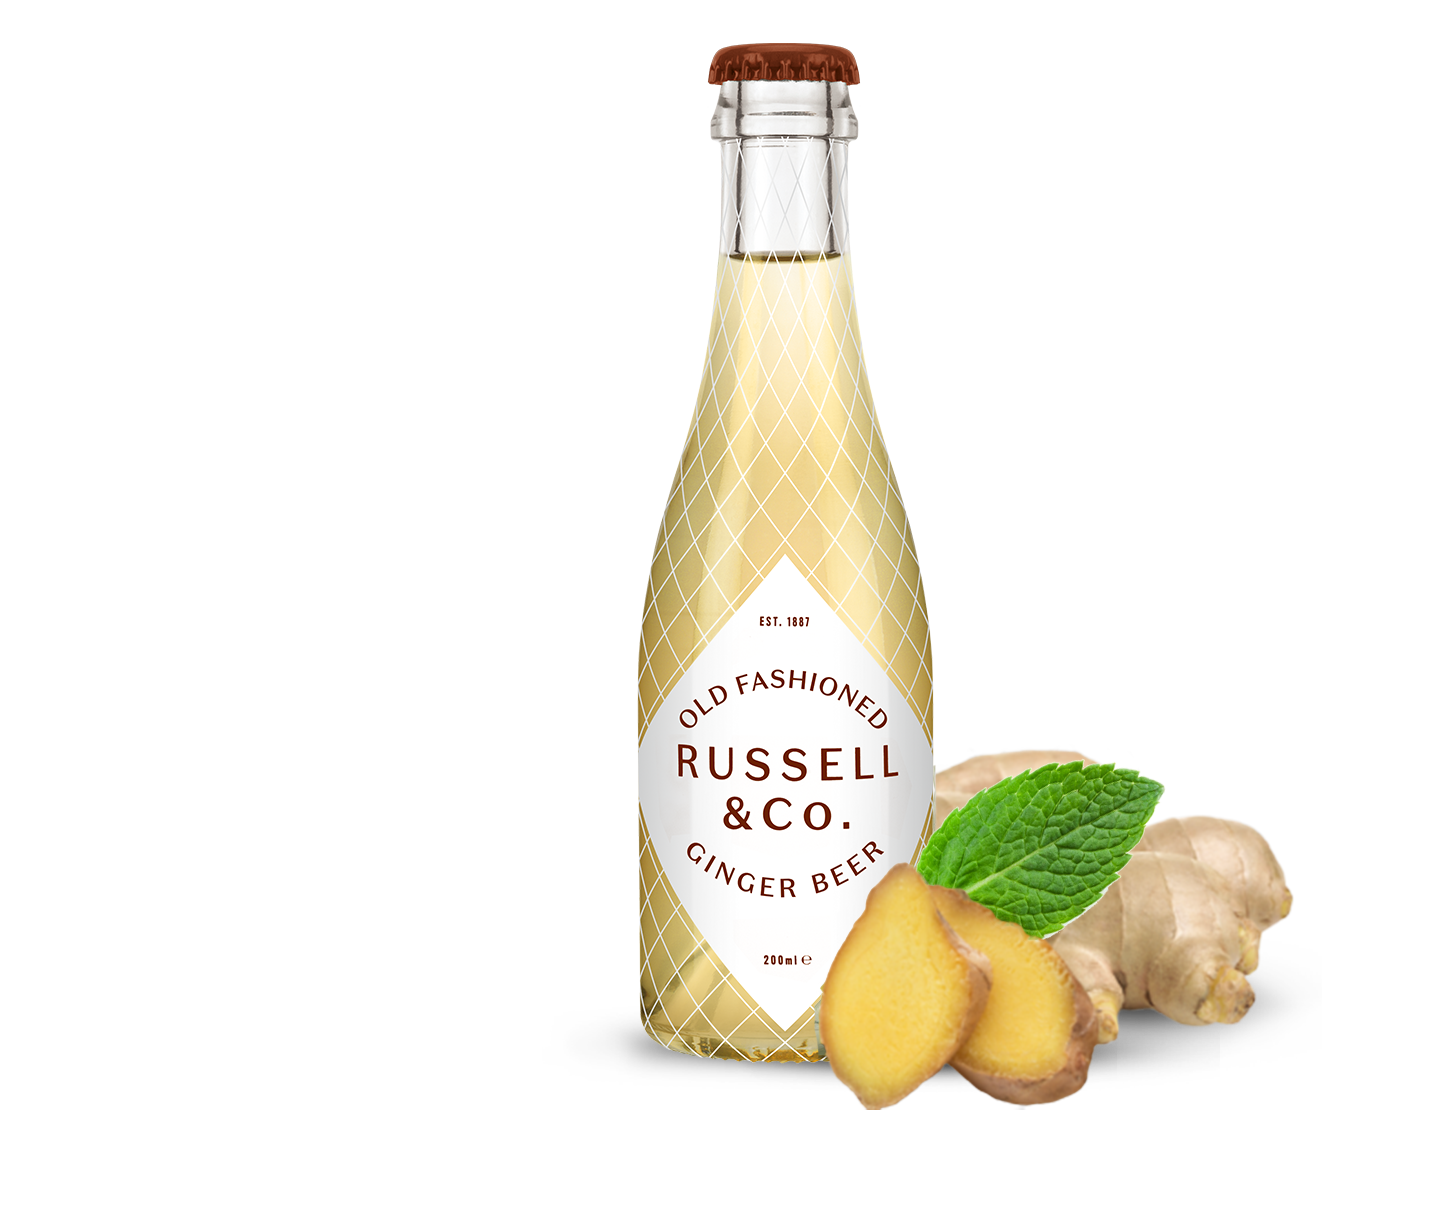 Russell & Co Old Fashioned Ginger Beer, Alles over gin.